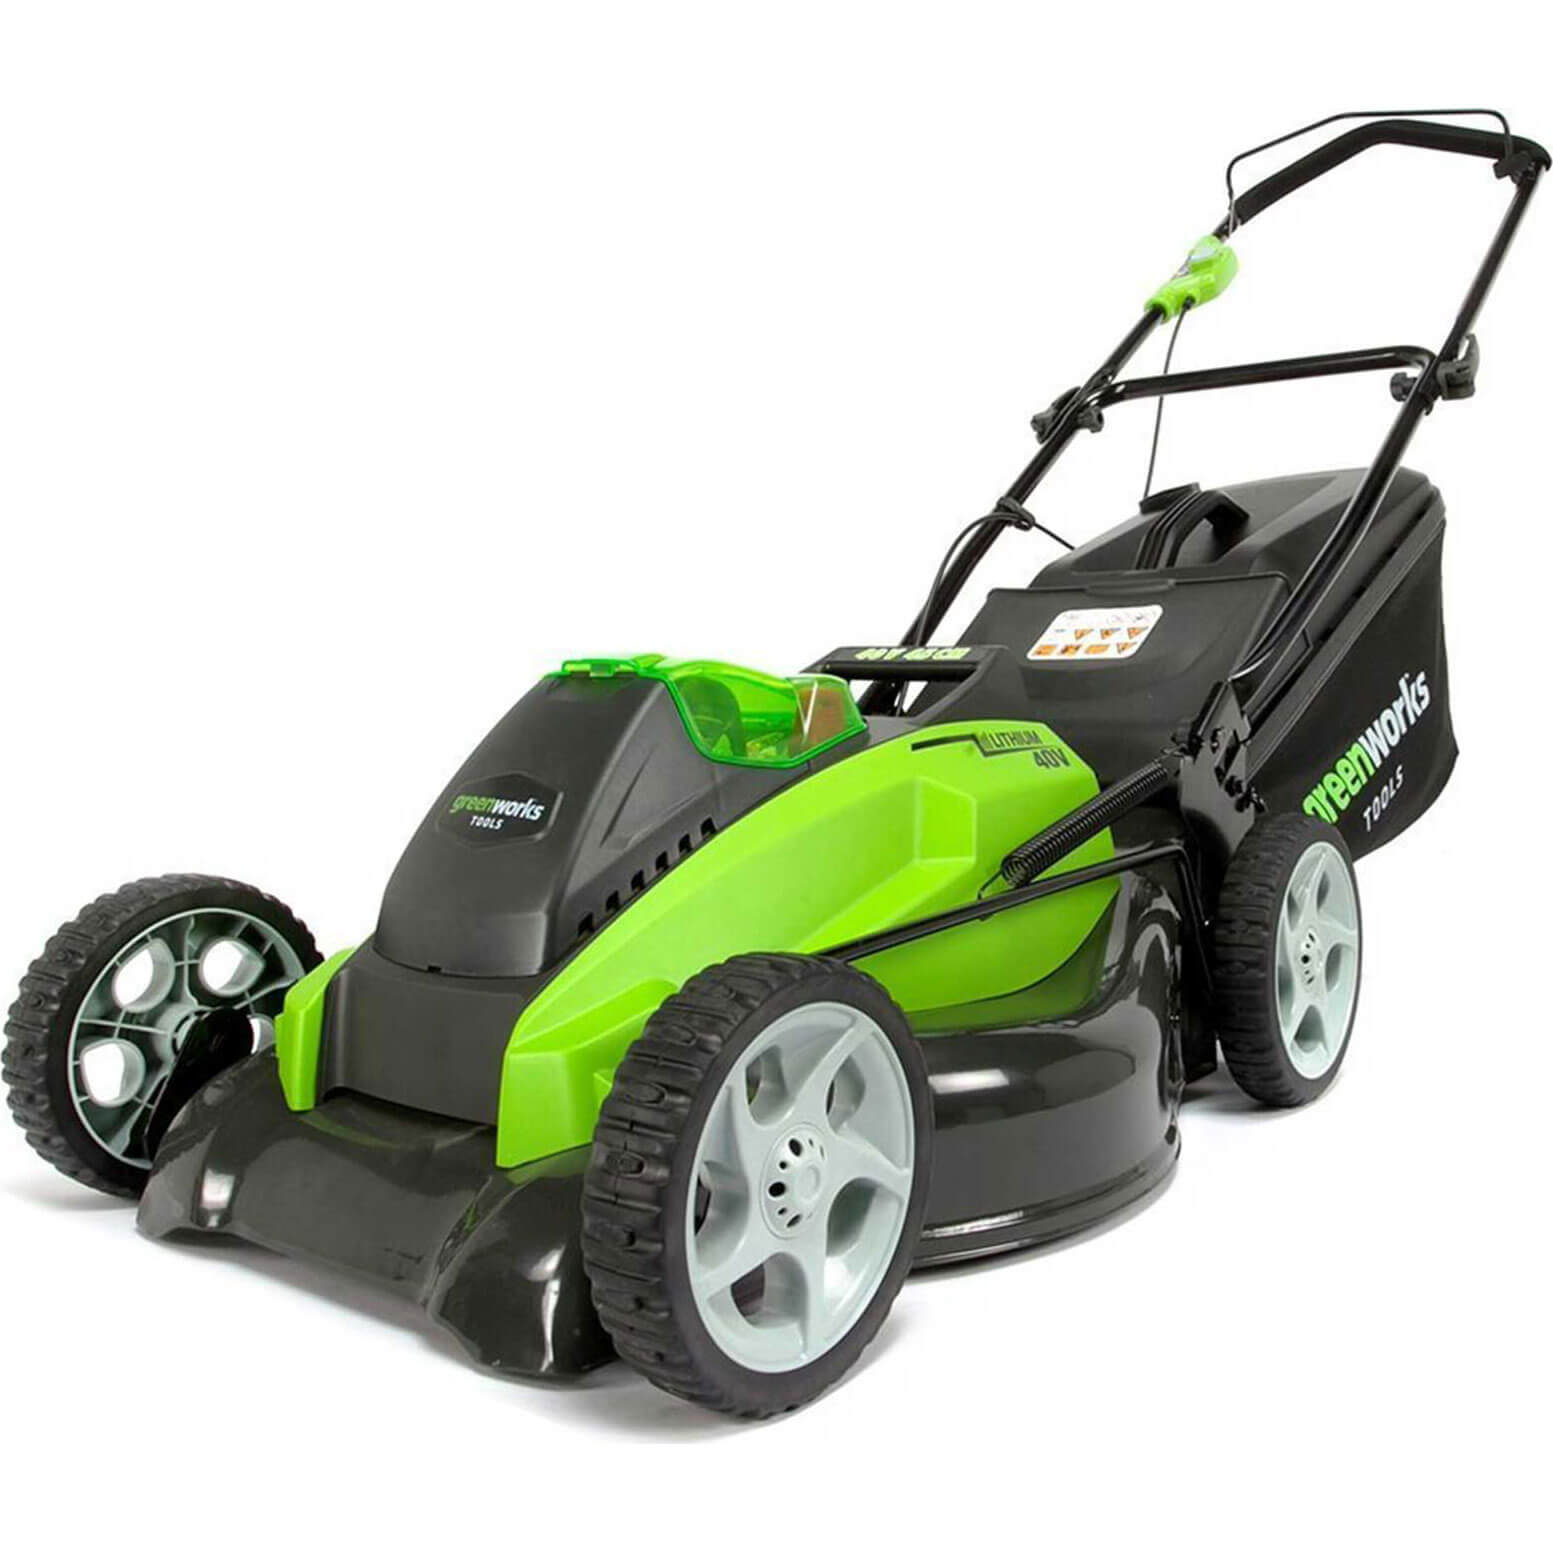 Image of Greenworks G40LM45 40v Cordless Rotary Lawnmower 450mm No Batteries No Charger